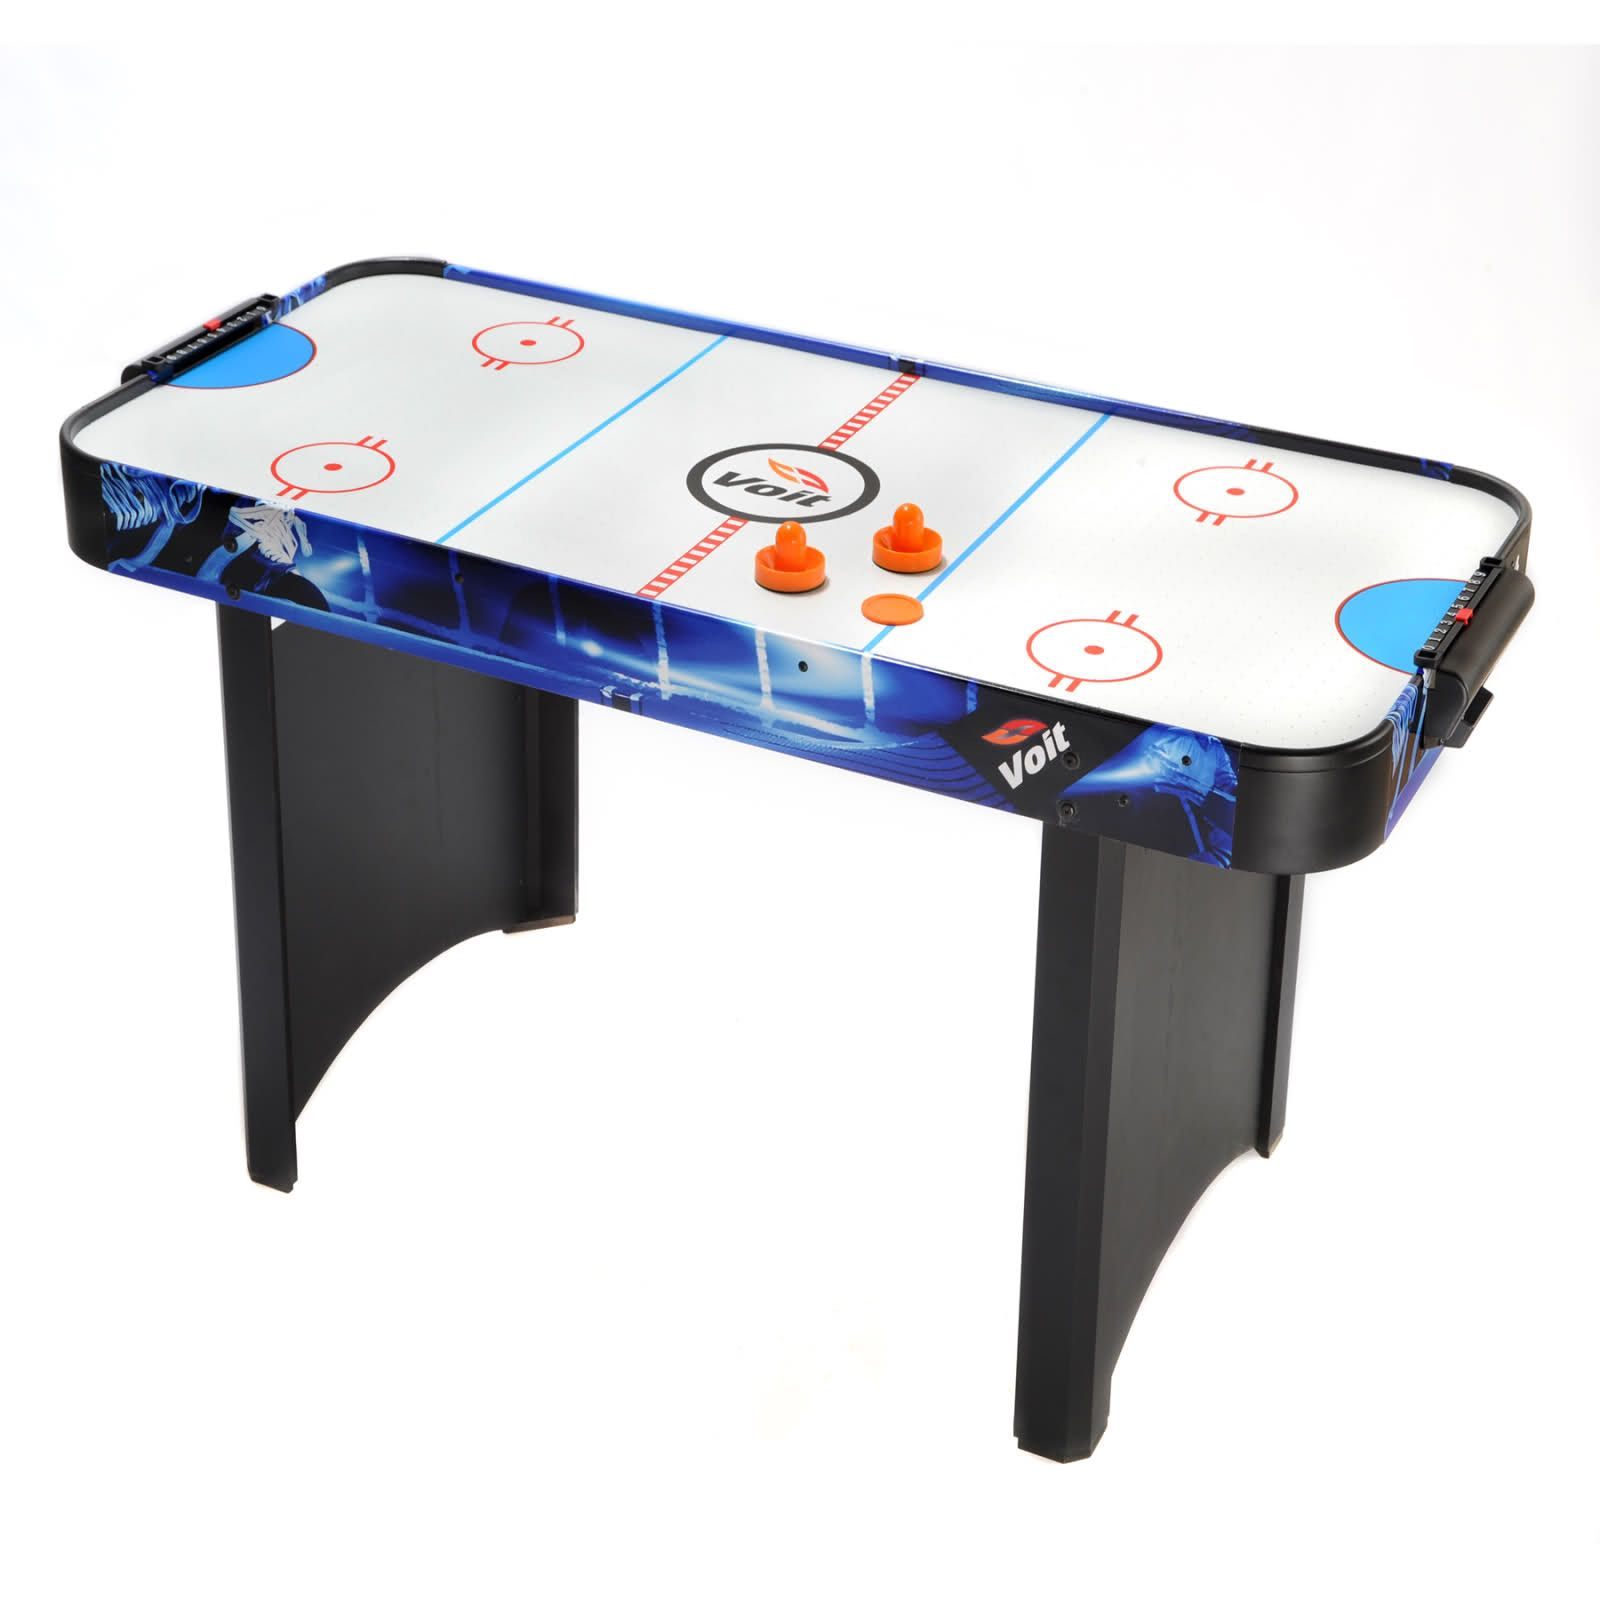 Voit  Voit 32in Table Top Air Hockey Game